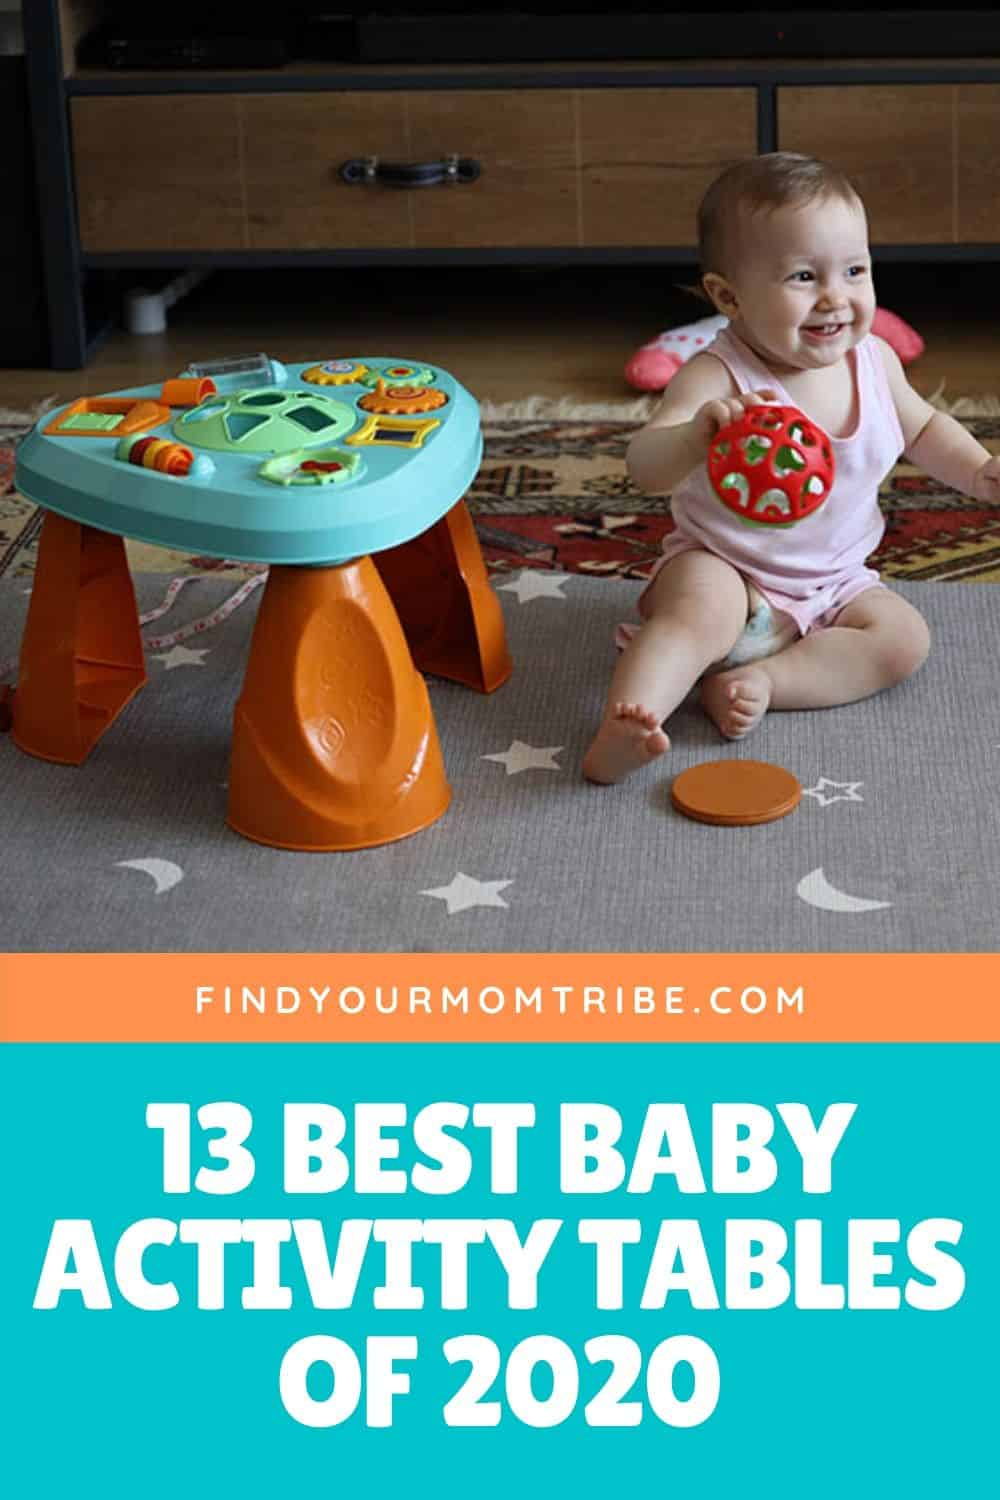 13 Best Baby Activity Tables Of 2020